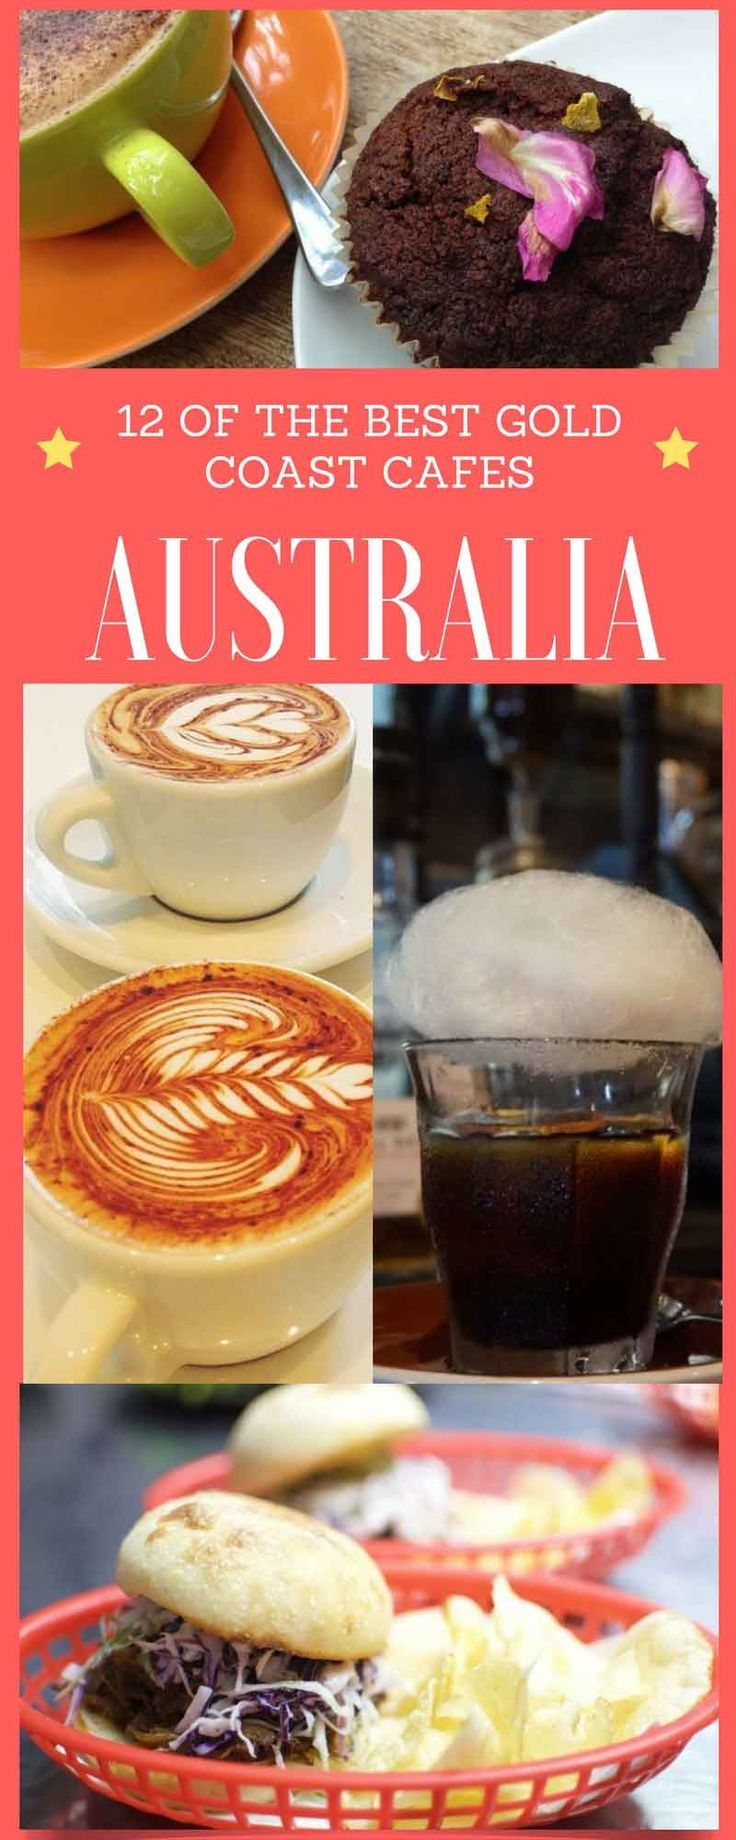 12 of the best Gold Coast cafes. Until a few years ago, 'froth' on the Gold Coast was associated with two things: foam from ocean waves during a big swell, or a milky cappuccino.